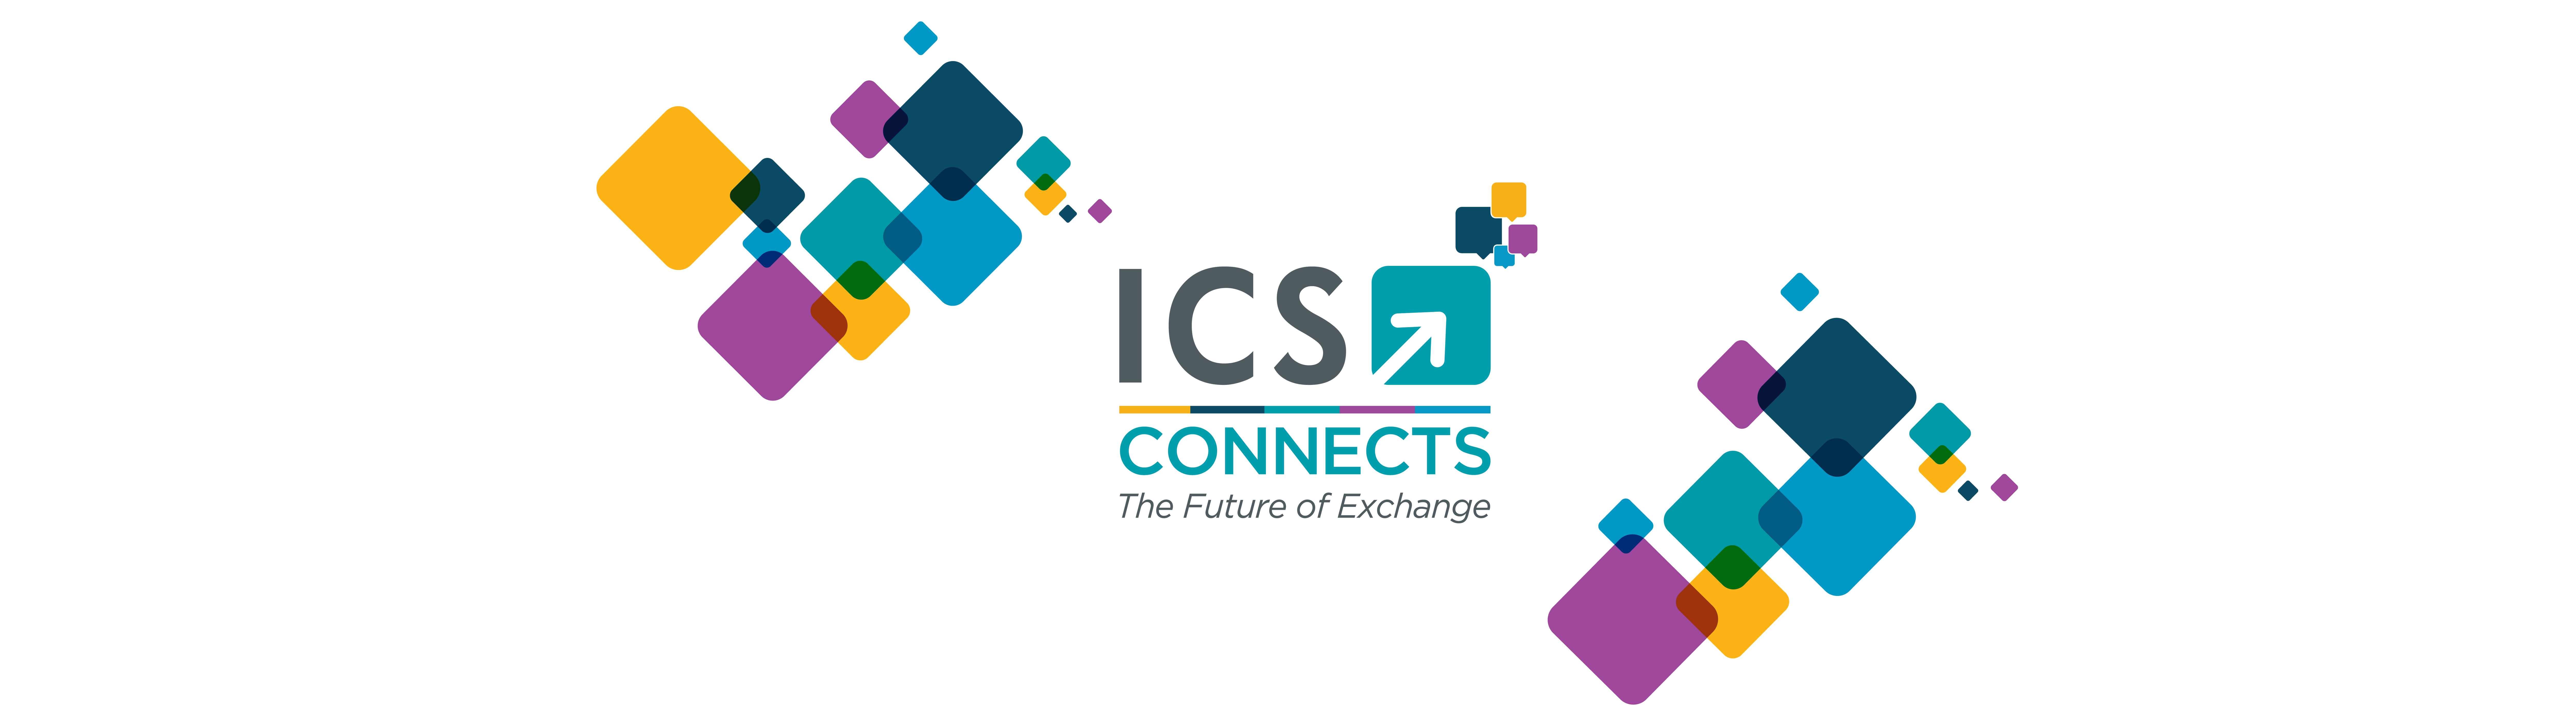 ICS Connects, Lyn Lewis-Smith, BE Sydney, The Future of Exchange, ICS Events, International Conferences, Vancouver Conference Management, Toronto Conference Management, London Conference Management, Tokyo Conference Management, ICS Videocast, Singapore Conference Management